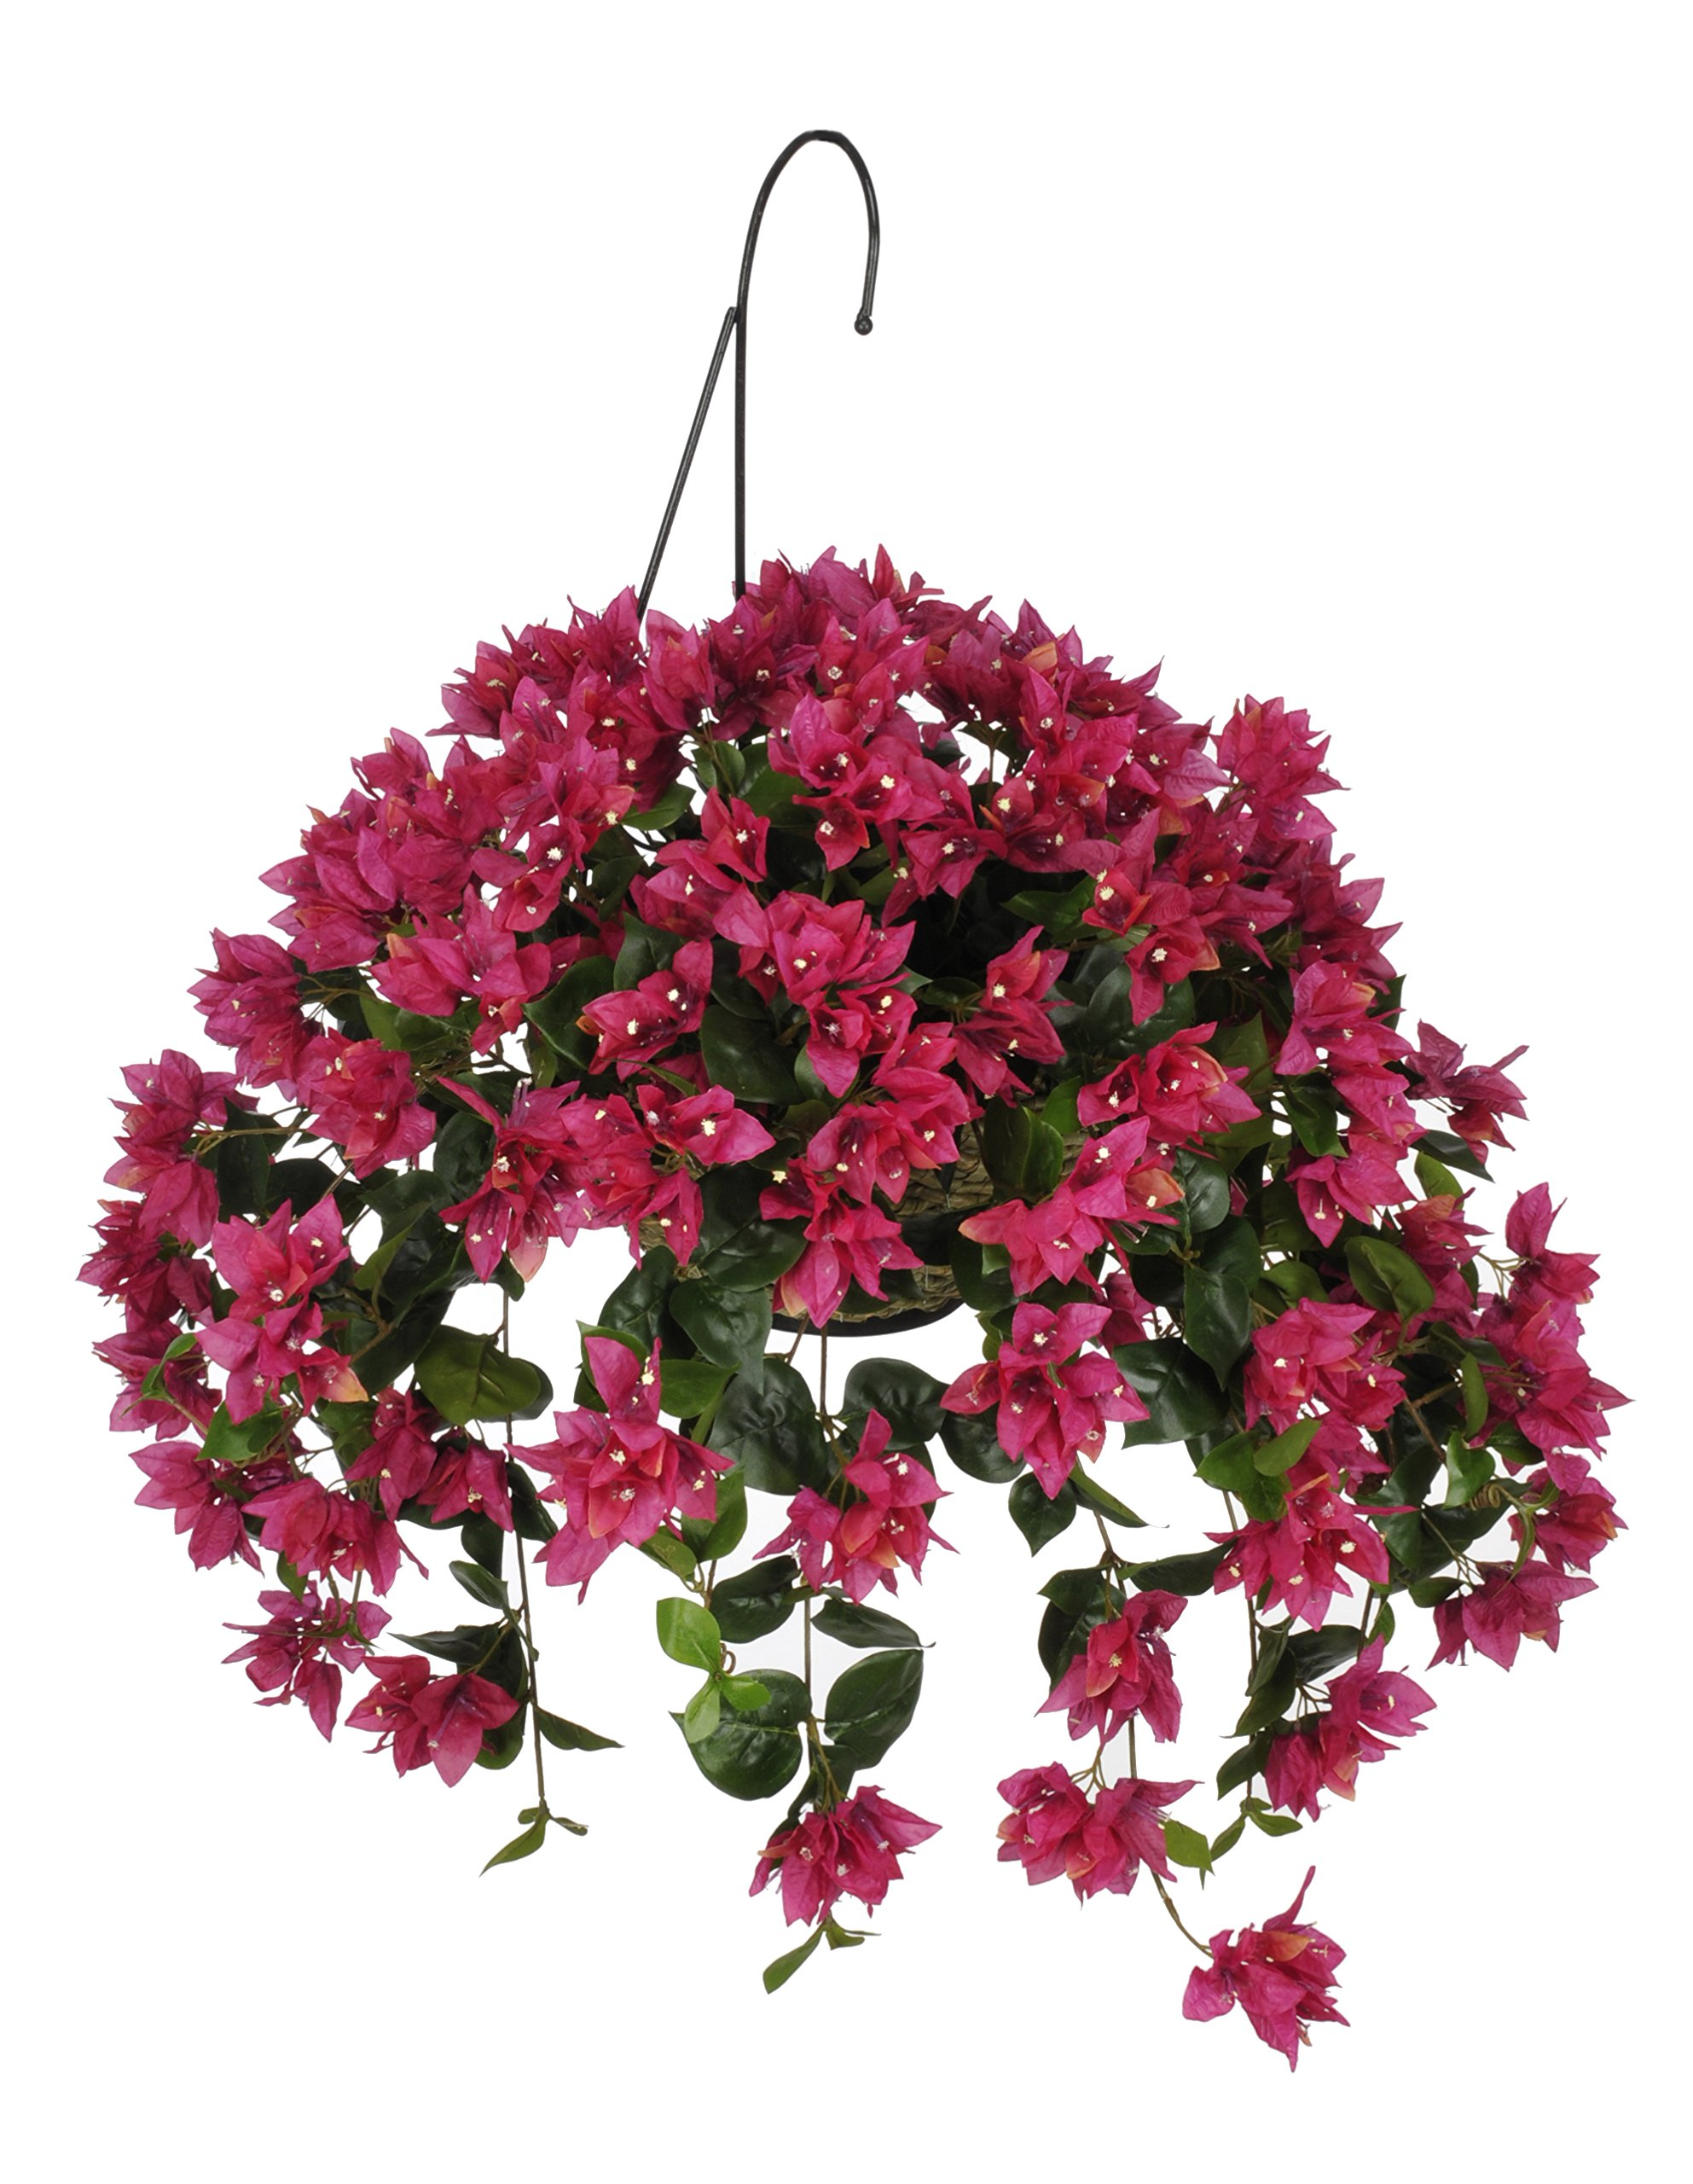 House of Silk Flowers Artificial Bougainvillea Hanging Basket, Violet/Fuchsia by House of Silk Flowers